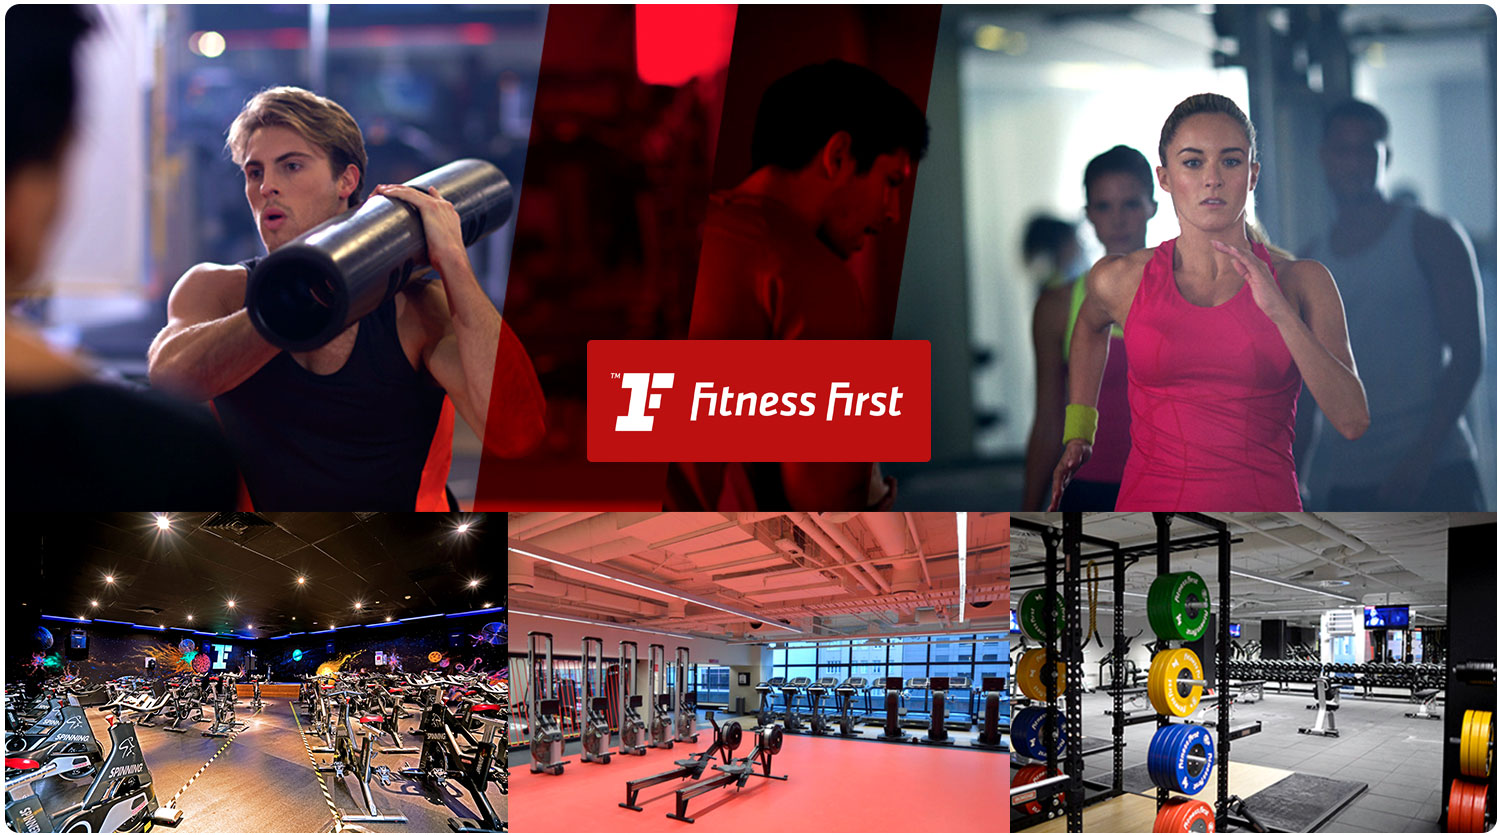 Start your Fitness Journey with Fitness First with only $14.95 for 14 days at Fitness First Toowong QLD. Experience our first class gym and freestyle classes inc. Zumba, Pilates, Yoga, HIIT, Boxing, Les Mills and more. Take the first step with Fitness First Toowong QLD.